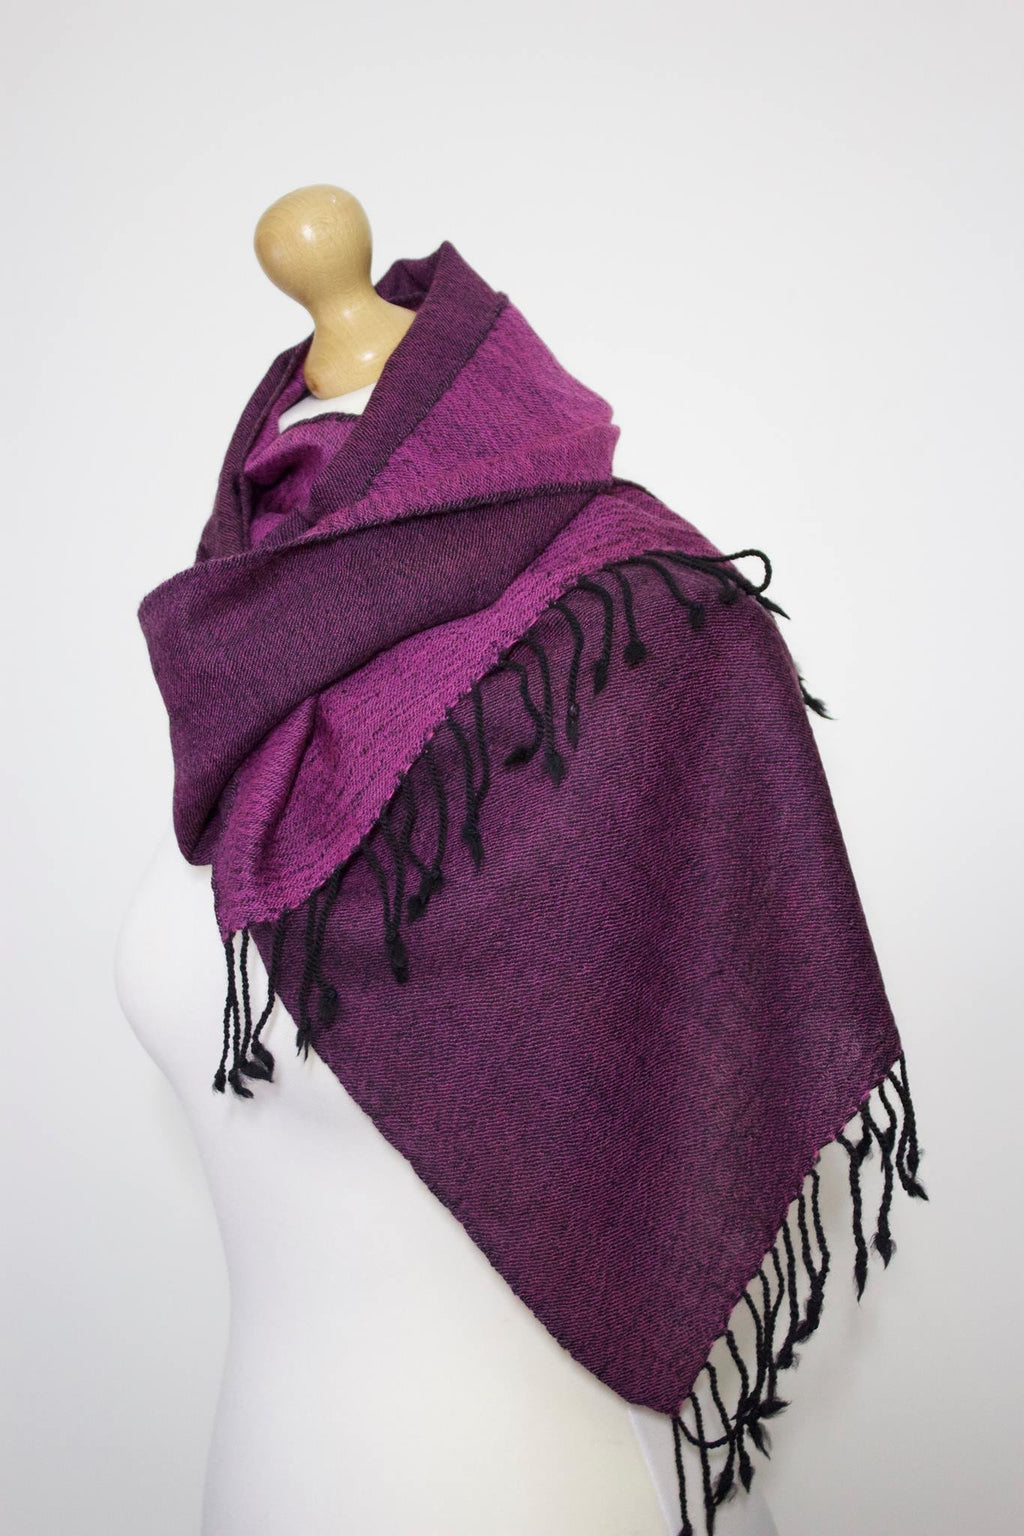 Wool Blend, Pink Berry Two Tone, Muffler